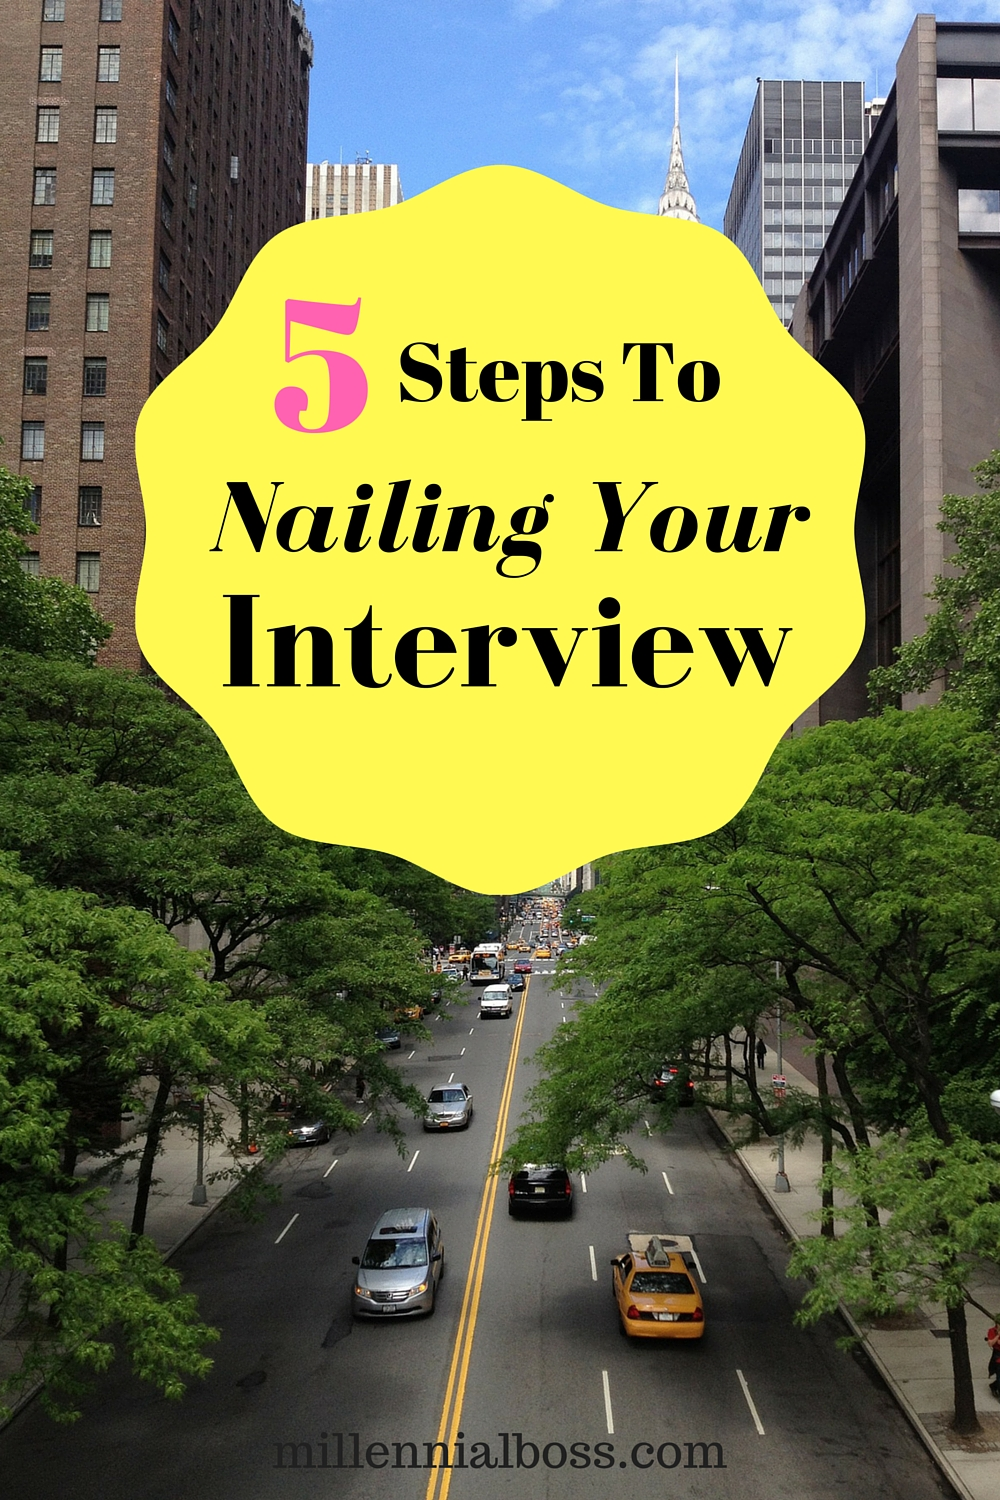 Nailing the interviewer